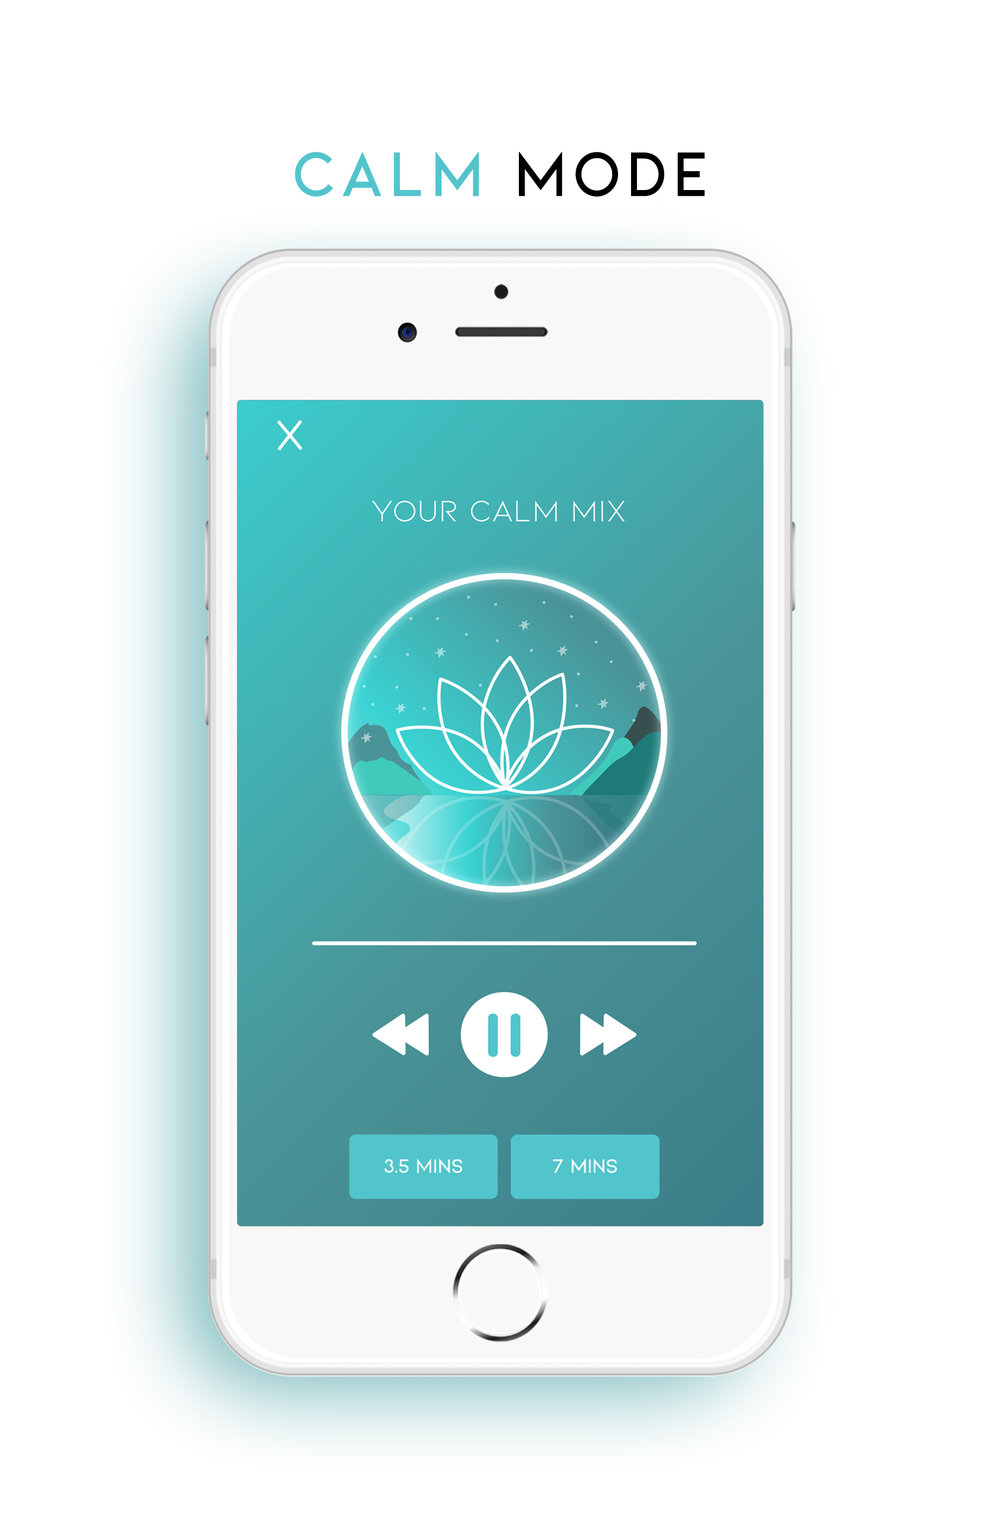 Need a break? - Calm mode gives you an effortless way to escape stress and anxiety. The curated soundscapes lift your spirits as the entrainment tones gently guide your brain to a state of relaxation